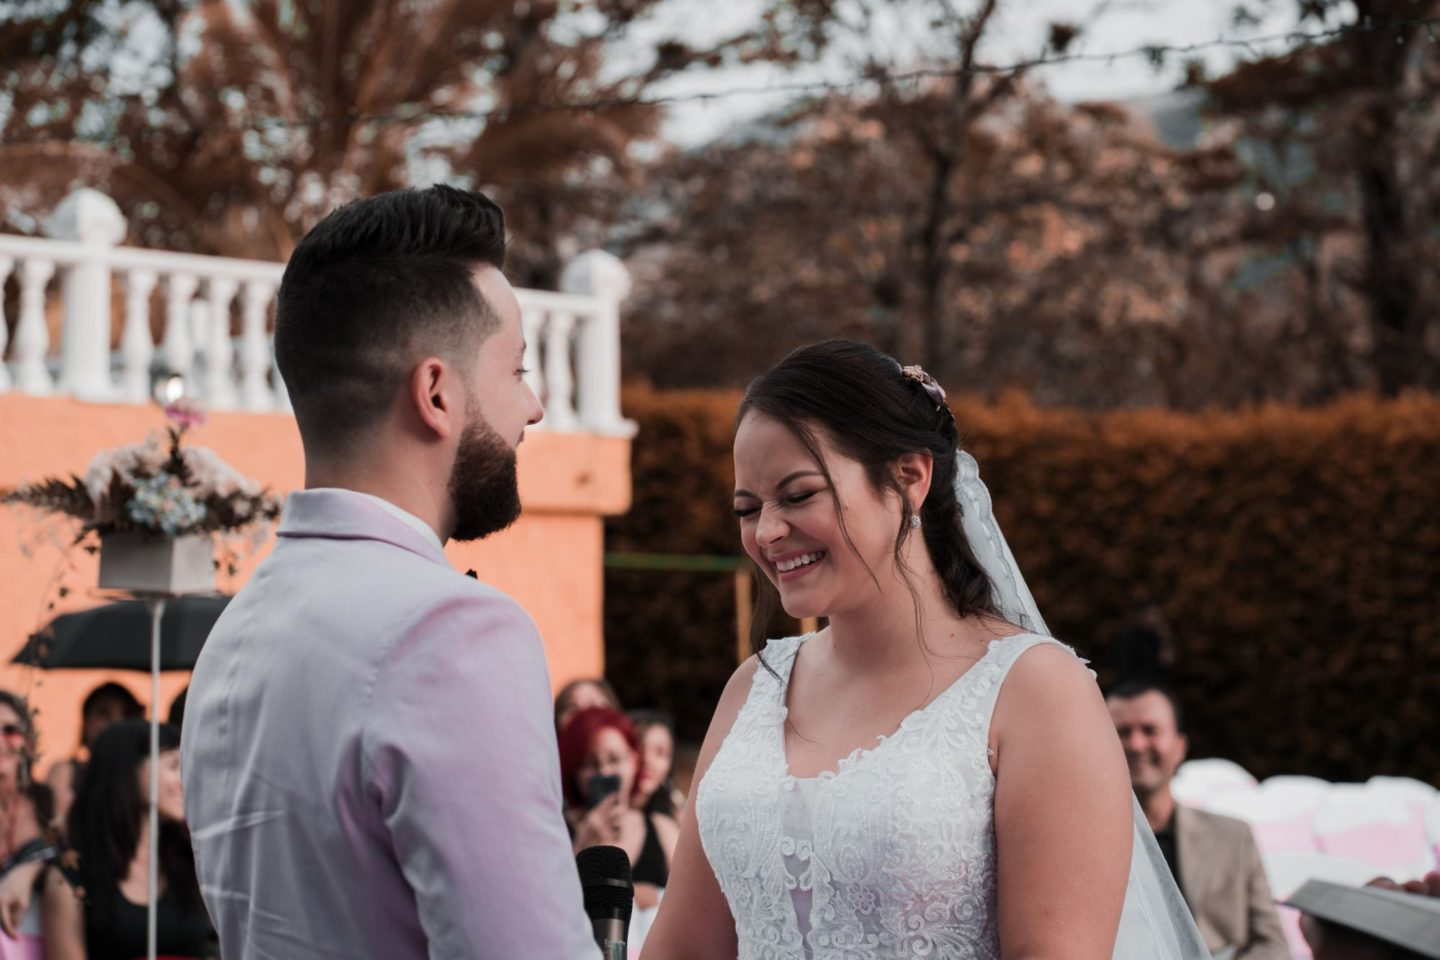 6 Unique Ways to Add Humour To Your Wedding Ceremony